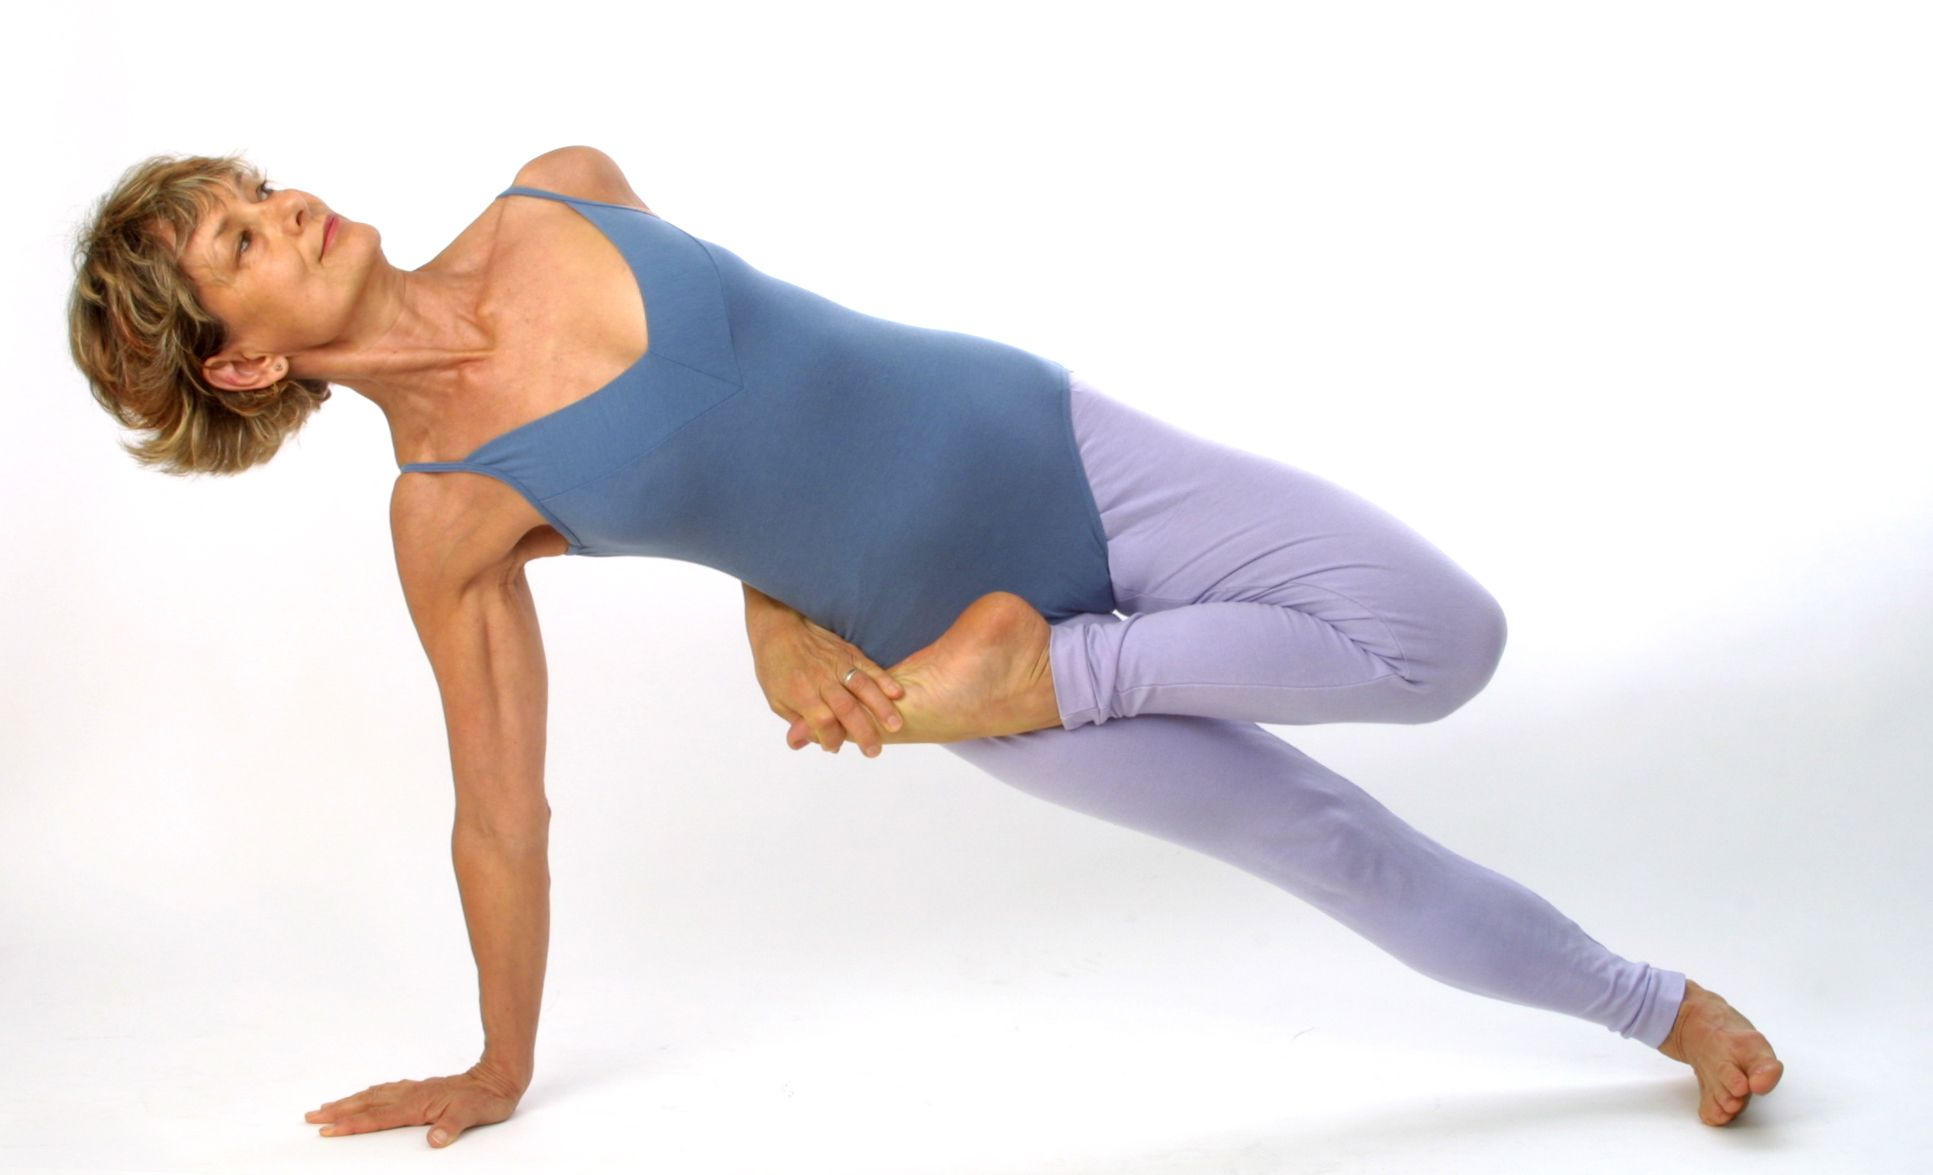 advanced yoga poses arm balances | Yoga | Pinterest ...